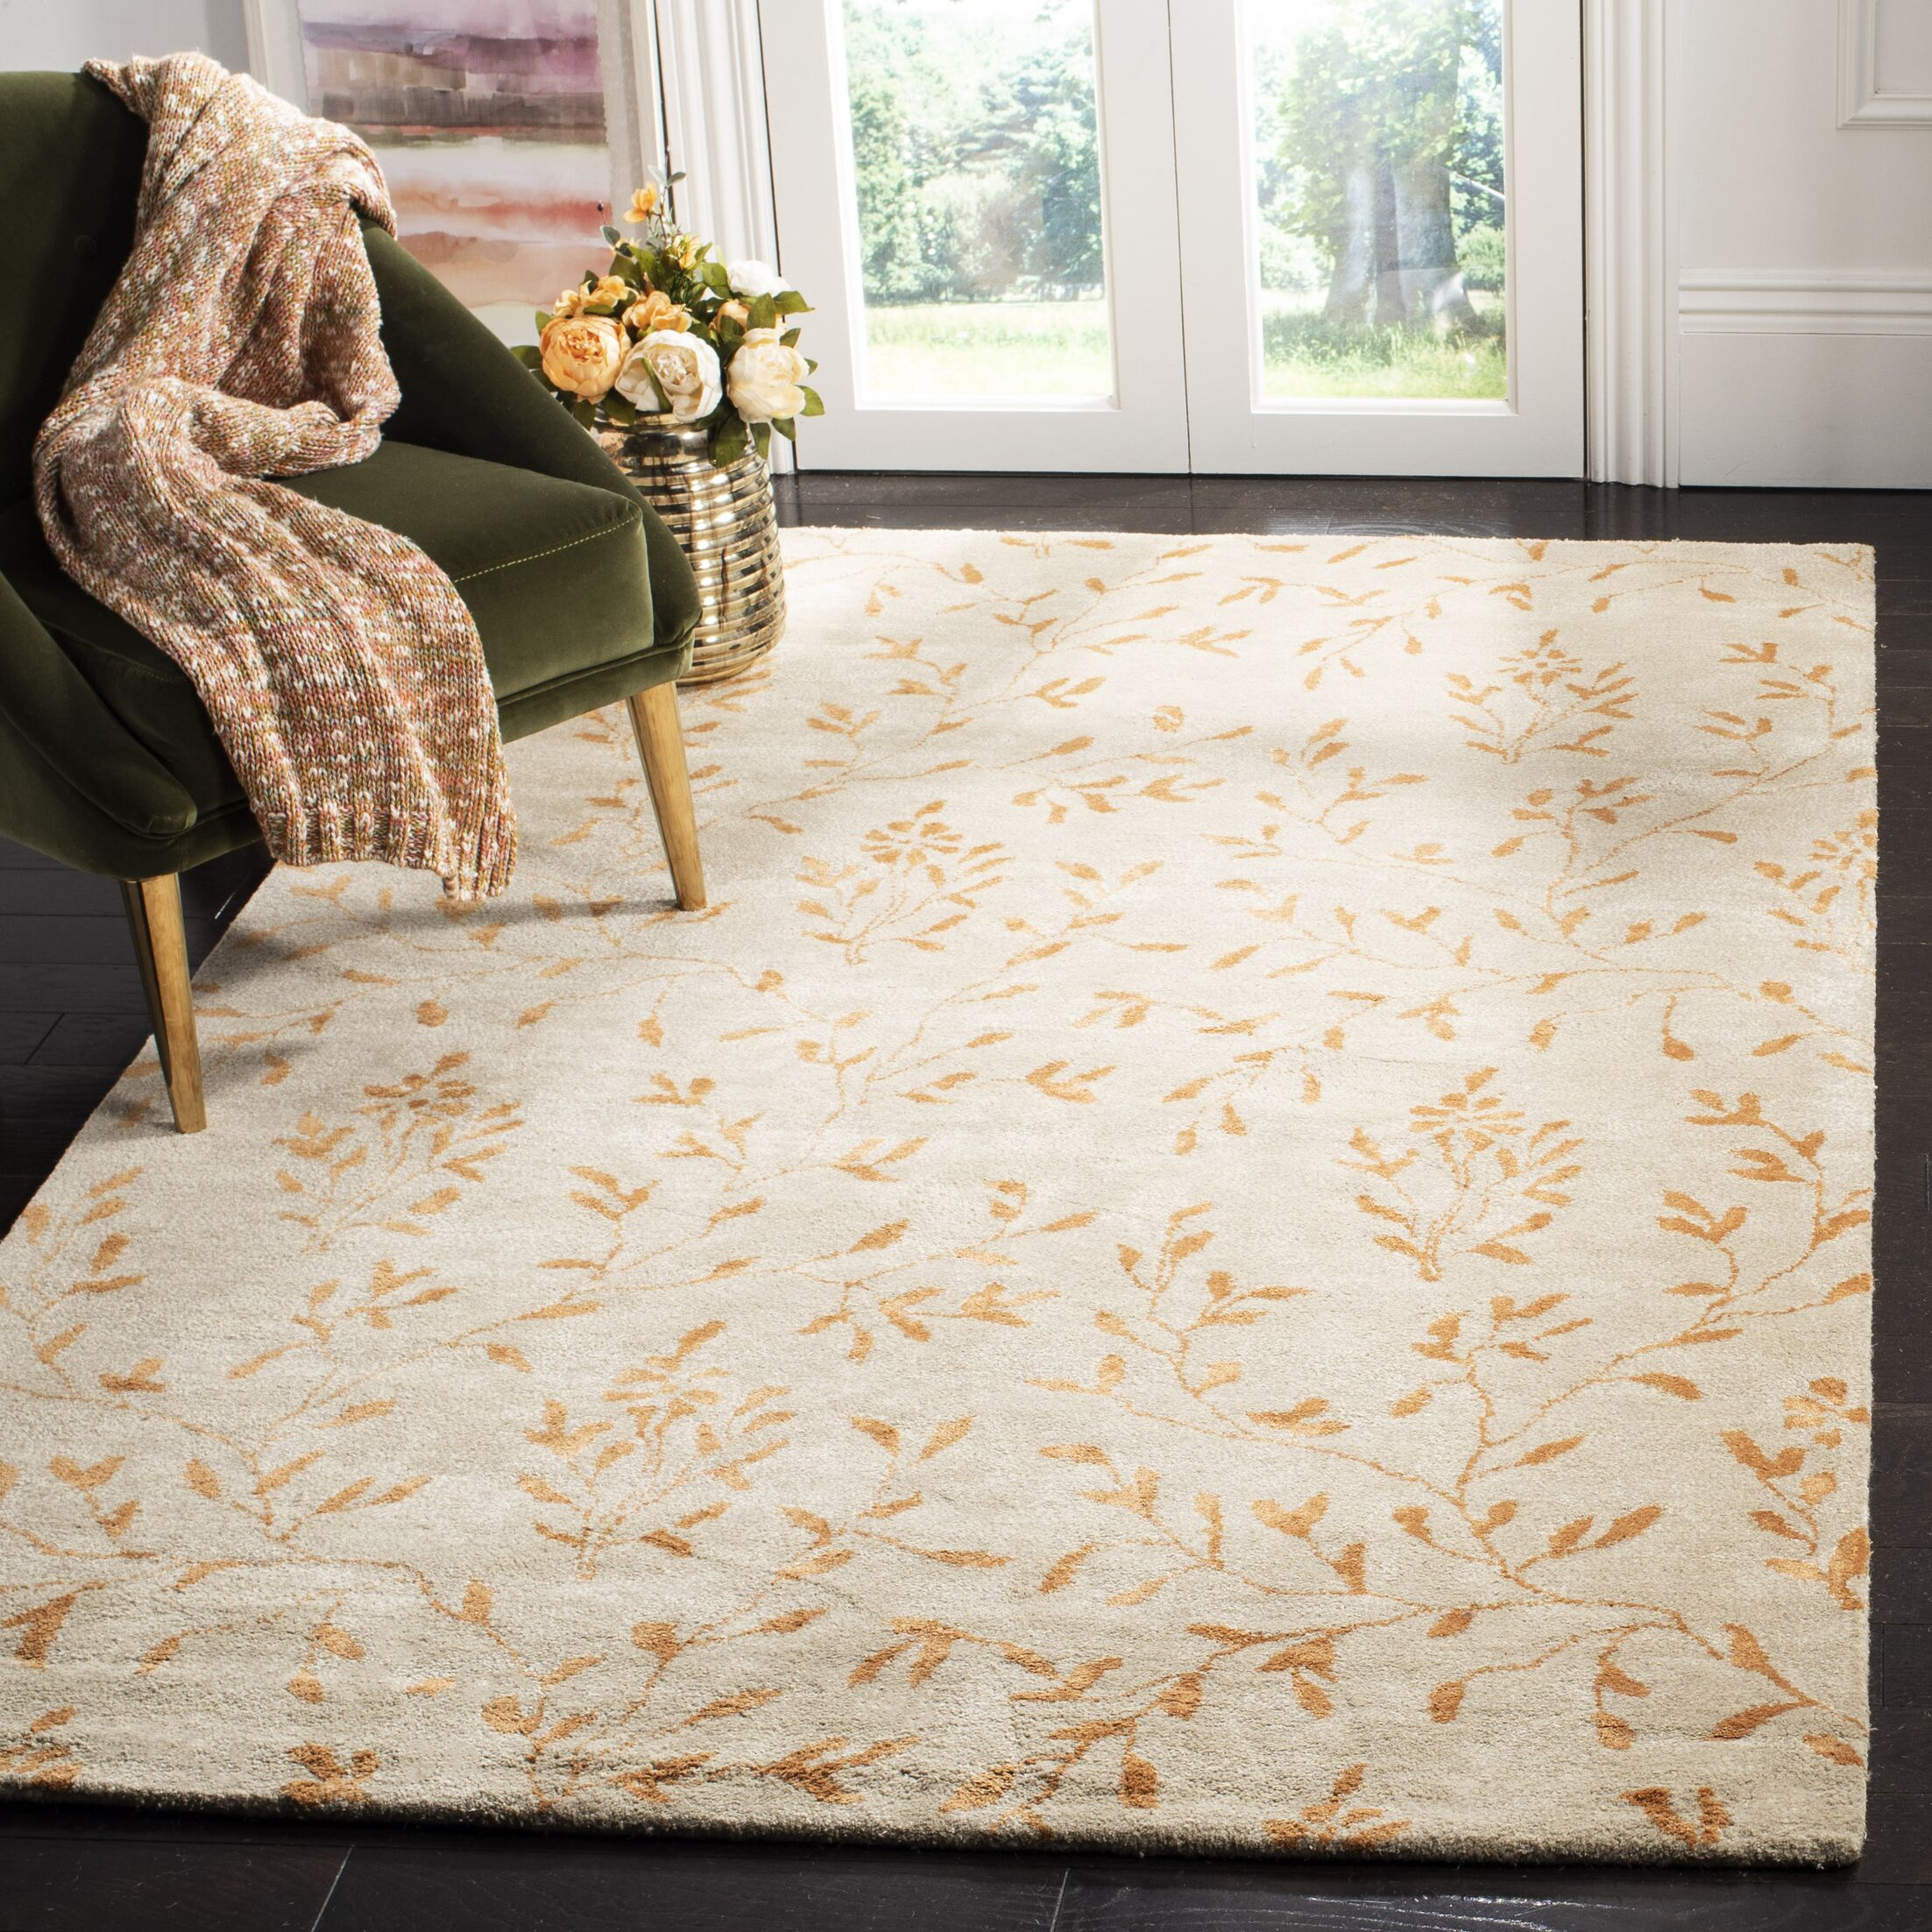 Alvan Hand-Tufted Beige/Orange Area Rug Rug Size: Rectangle 5' x 8'